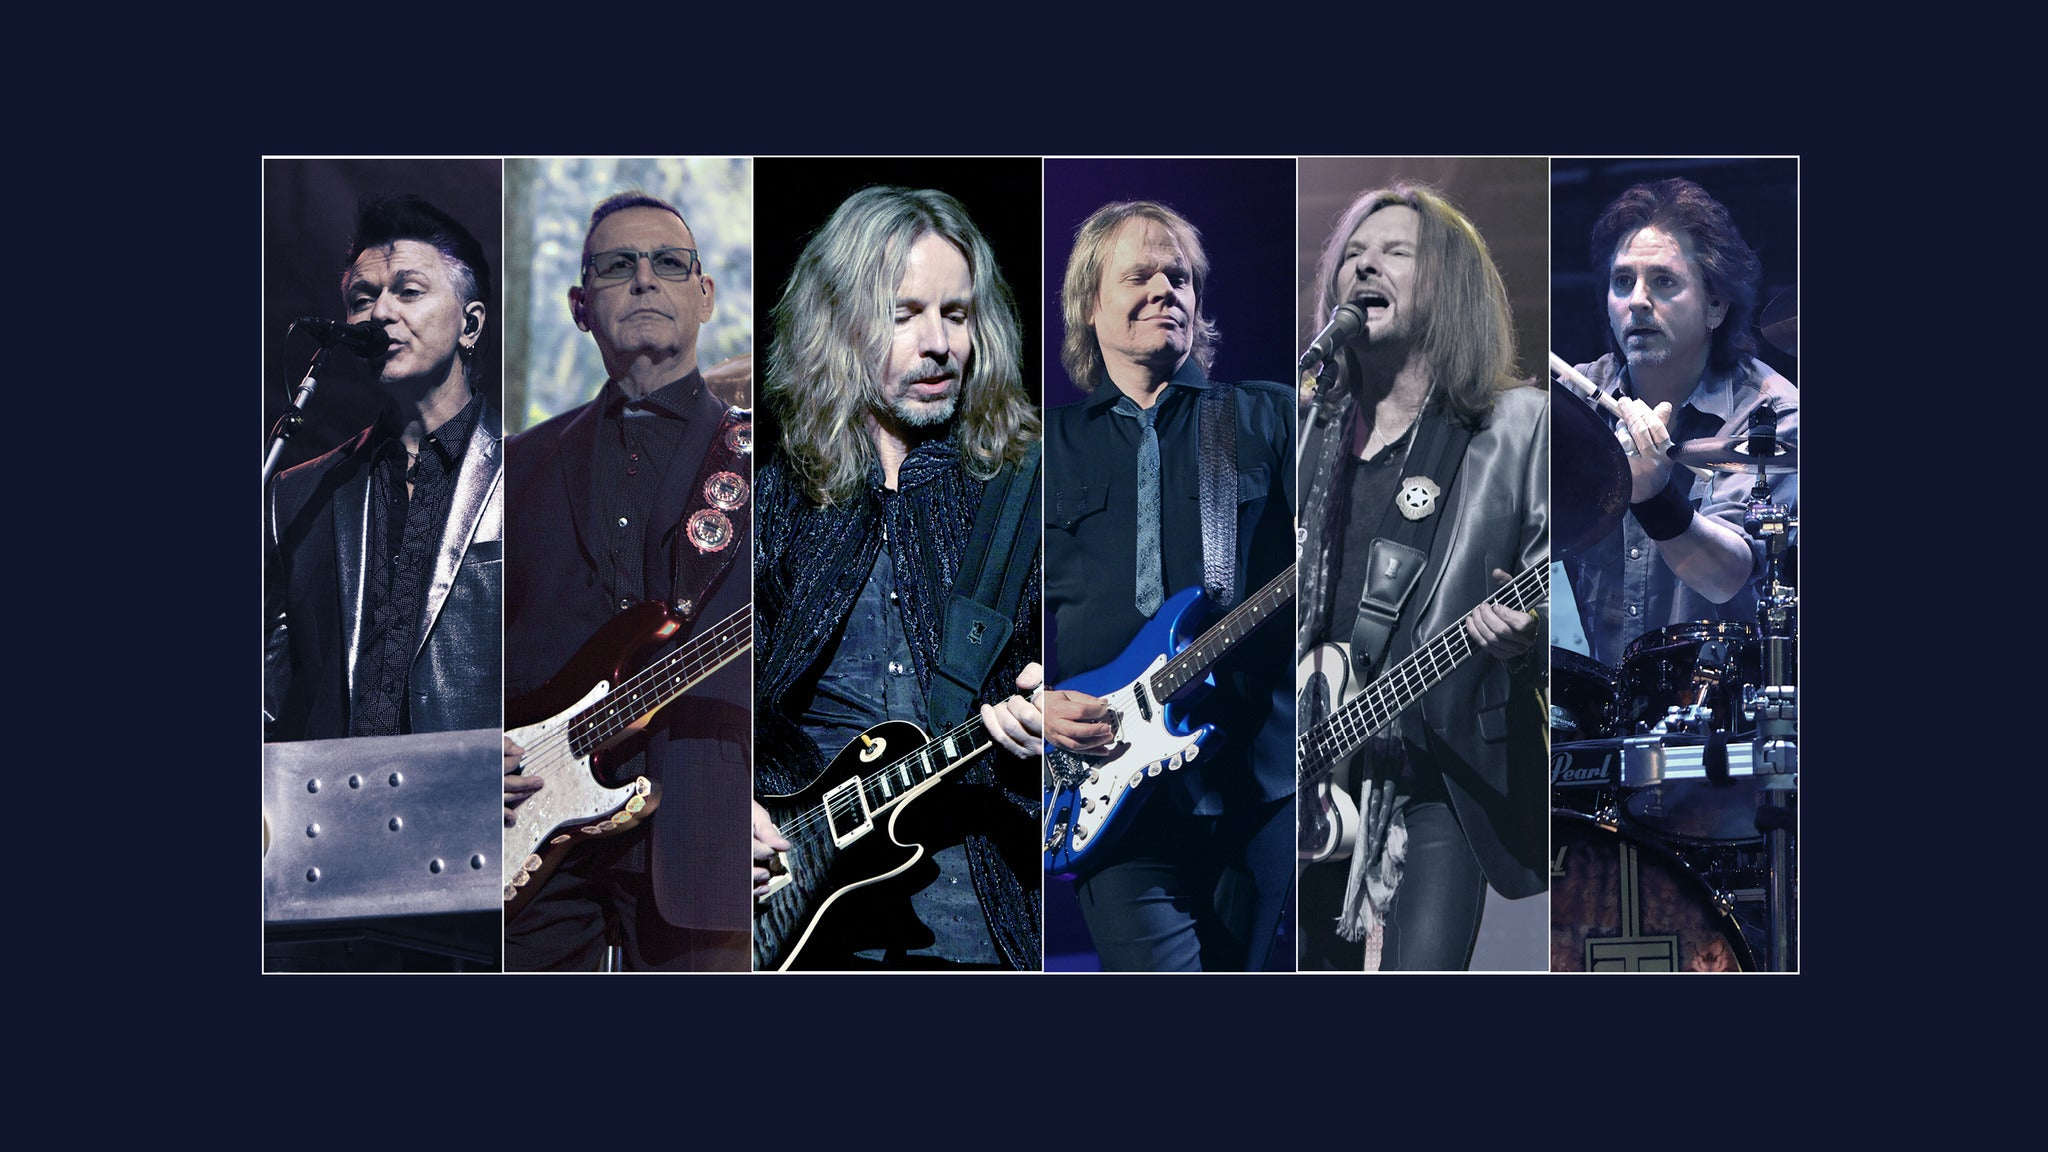 Styx presale passcode for early tickets in Southaven